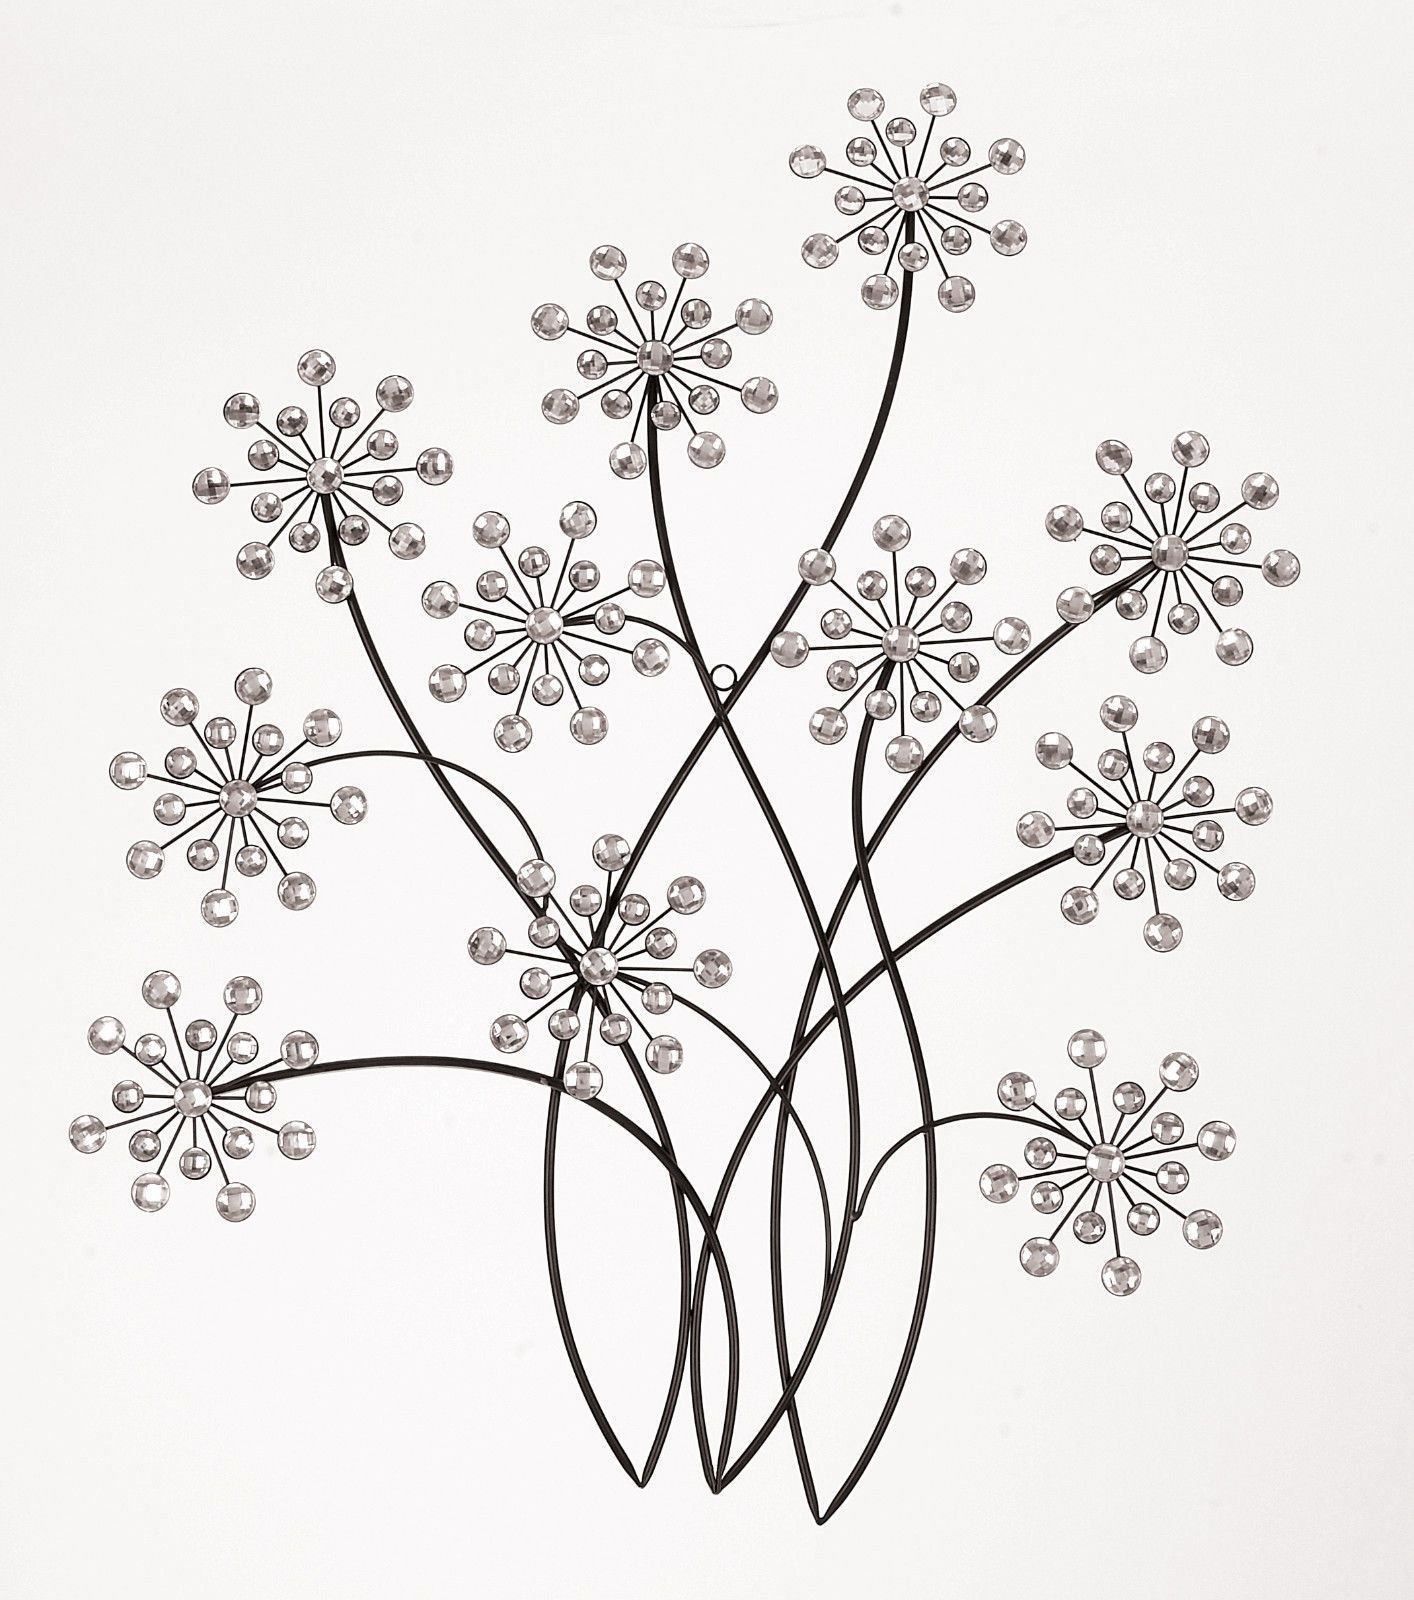 Black Iron Wall Decor Contemporary Black Jeweled Metal Flower Wall Art Sculpture 31x 24